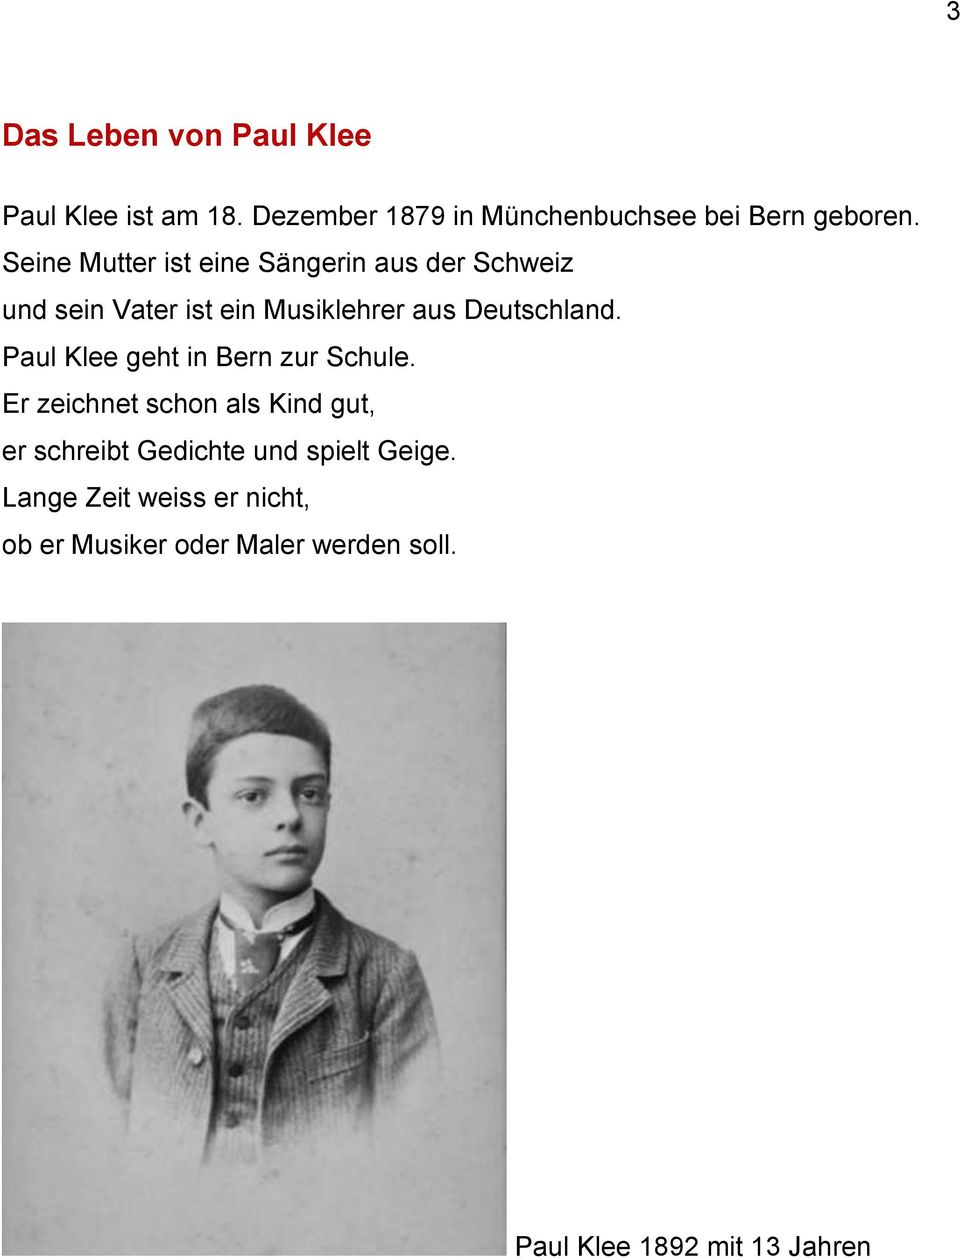 Biographie Paul Klee Und Franz Marc Zentrum Paul Klee 5